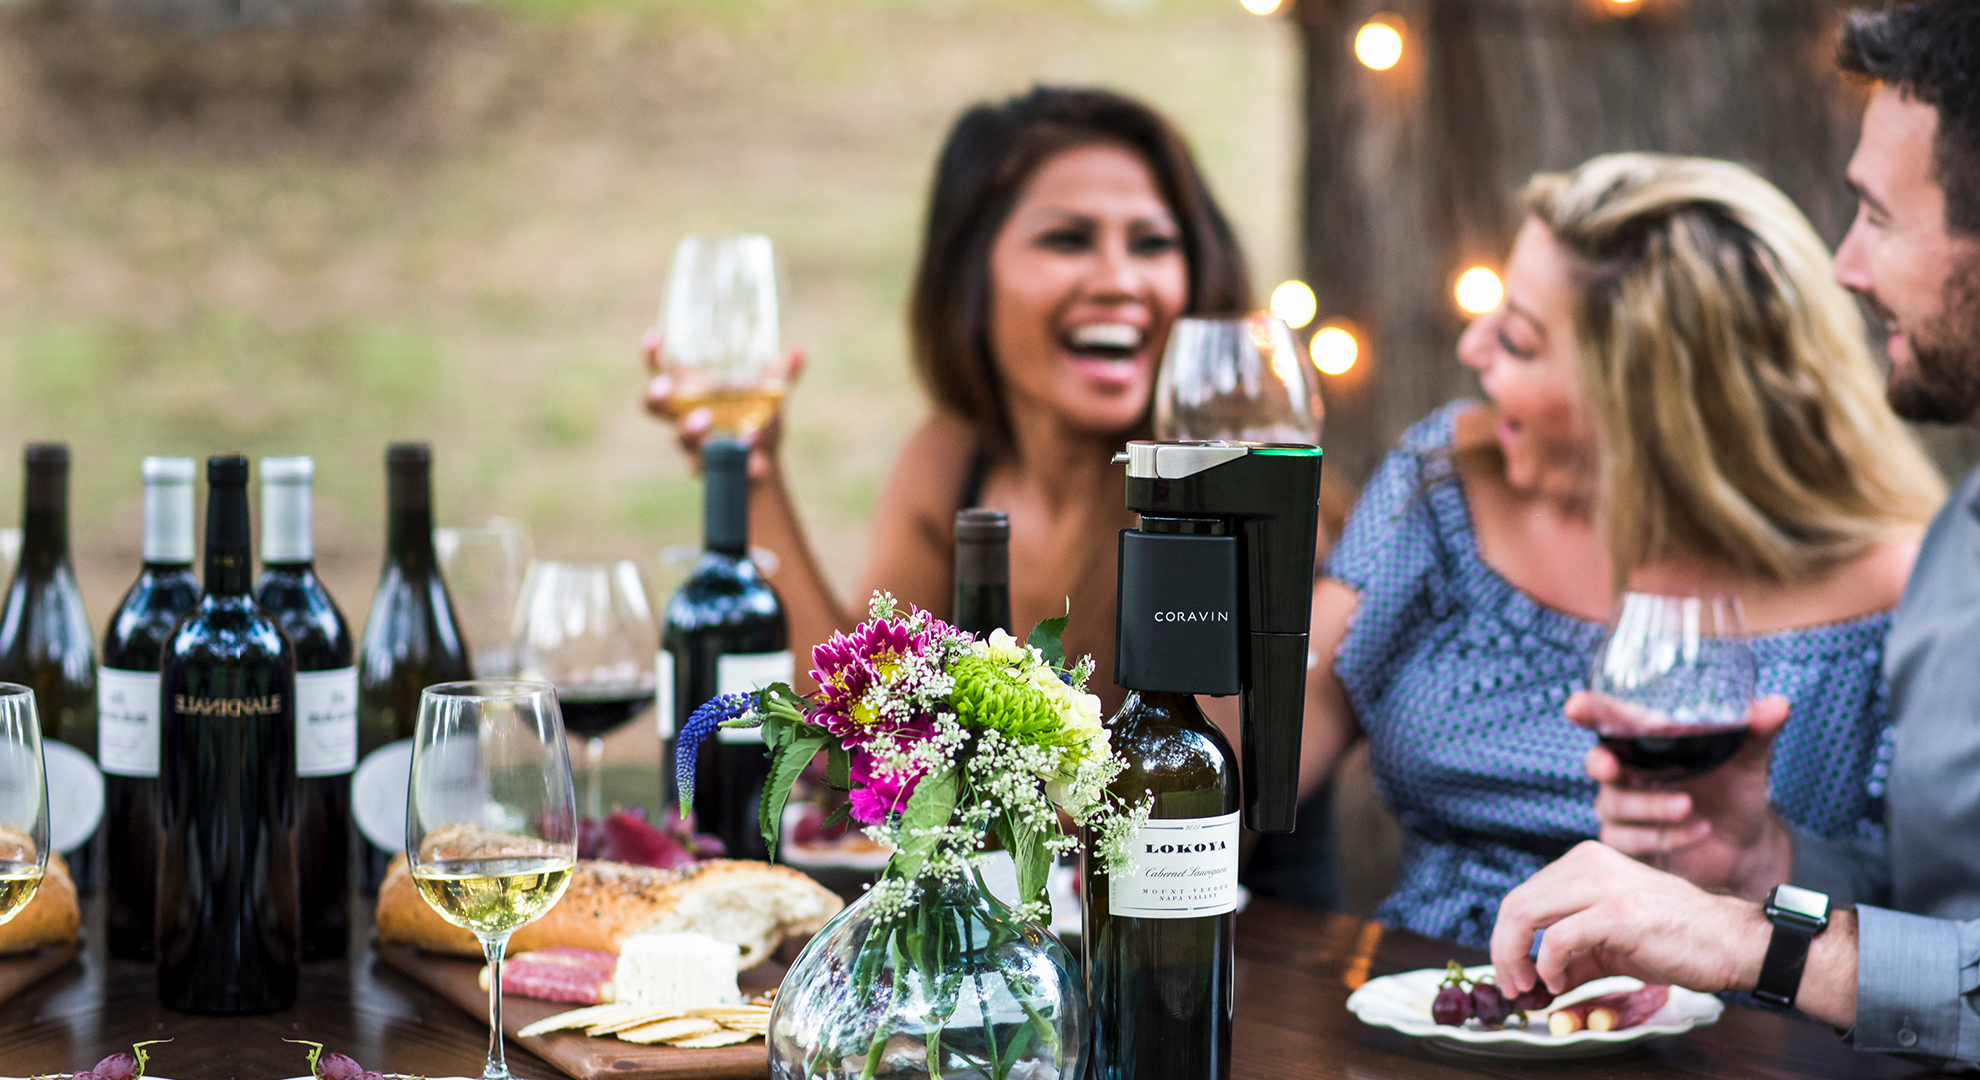 Friends using a Coravin to drink red and white wine outdoors at a picnic table.